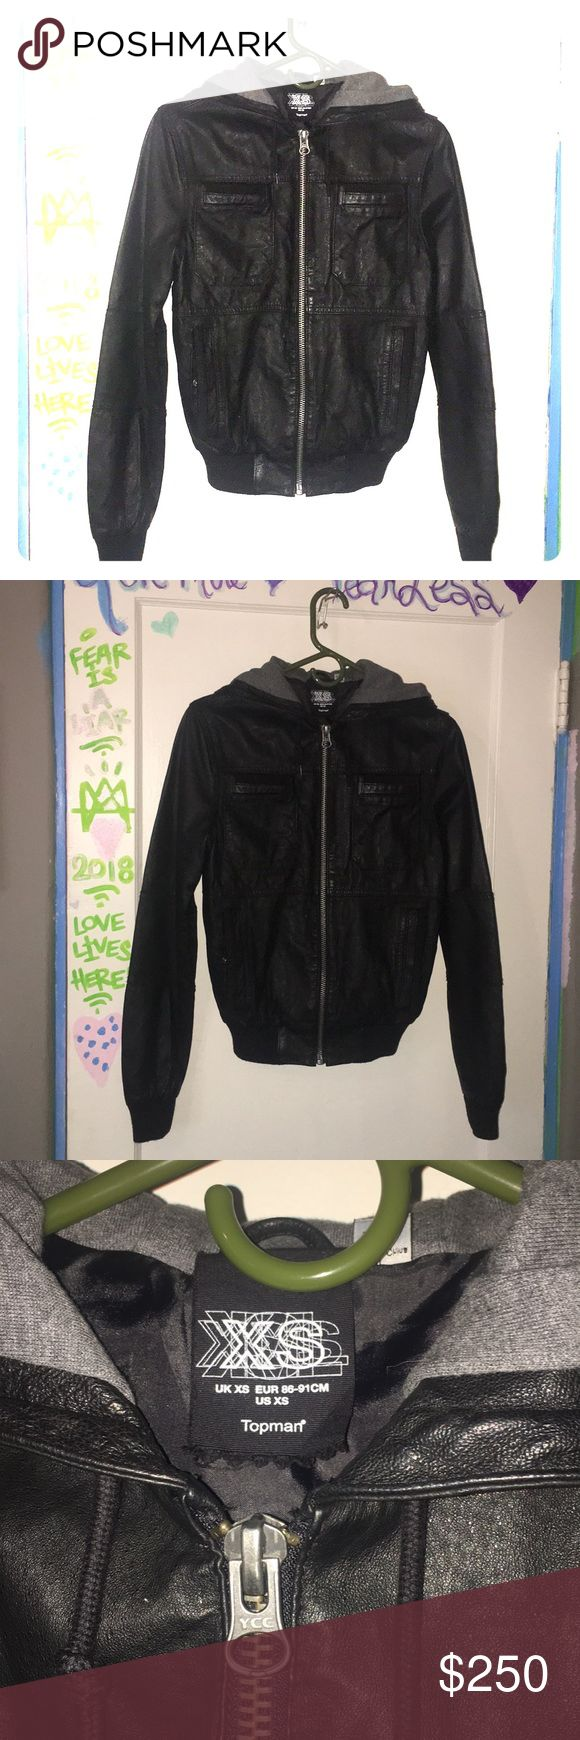 Super Cute XS Leather Jacket Bomber by Topman!❤️. Amazing, hardly worn, like twice to model, cozy fleece grey hoodie inside cap, pockets (4 two small top, and to put your hands- standard styles;)). Great coat!❤️ Mint Condition:) Topman Jackets & Coats